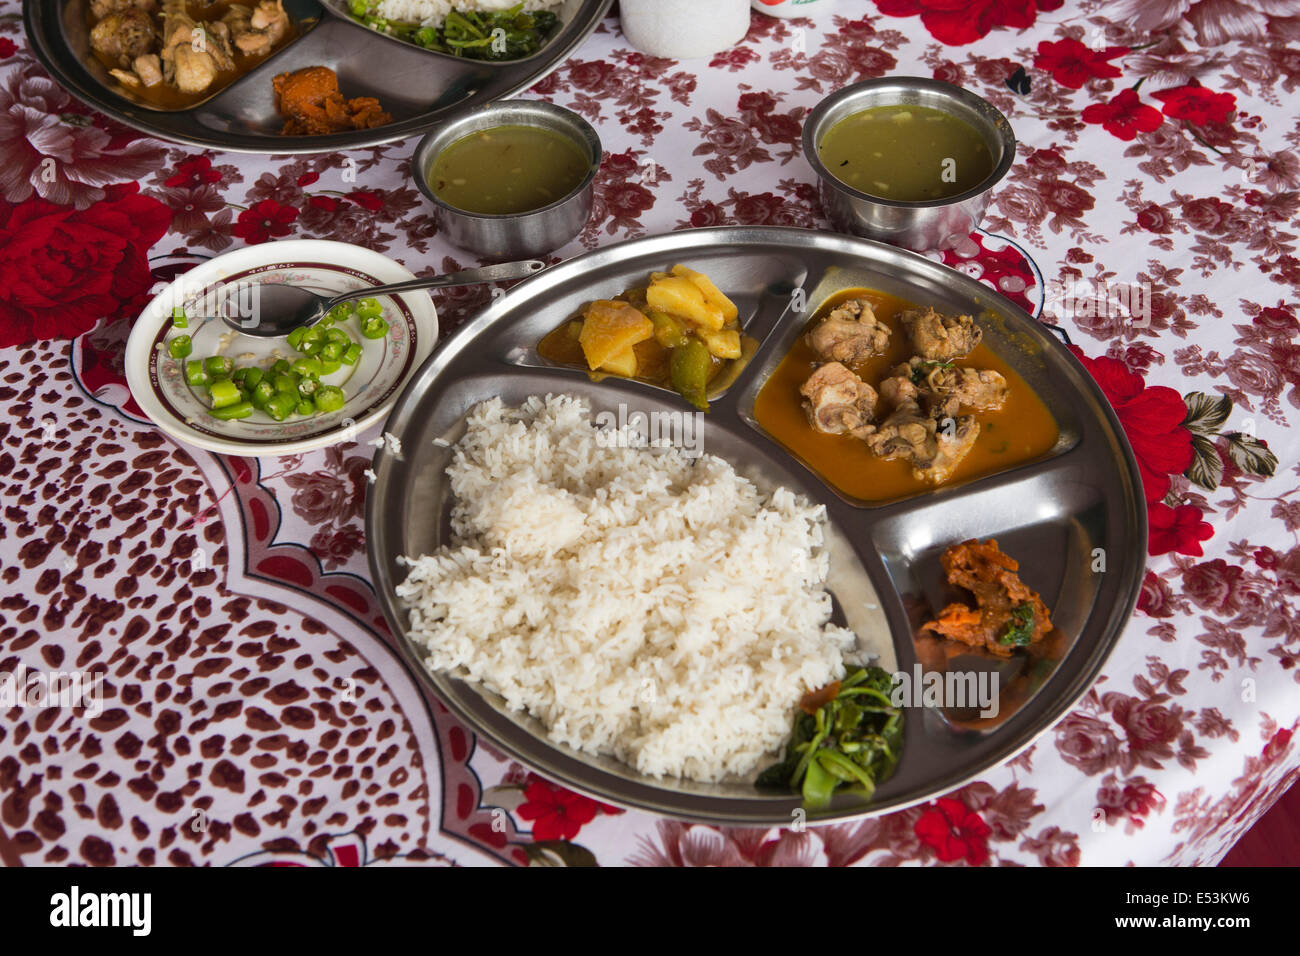 Nepal, Tikedungha, typical Nepali, food, meal of dal bhat on thali plate, rice and lentils, with vegetables - Stock Image